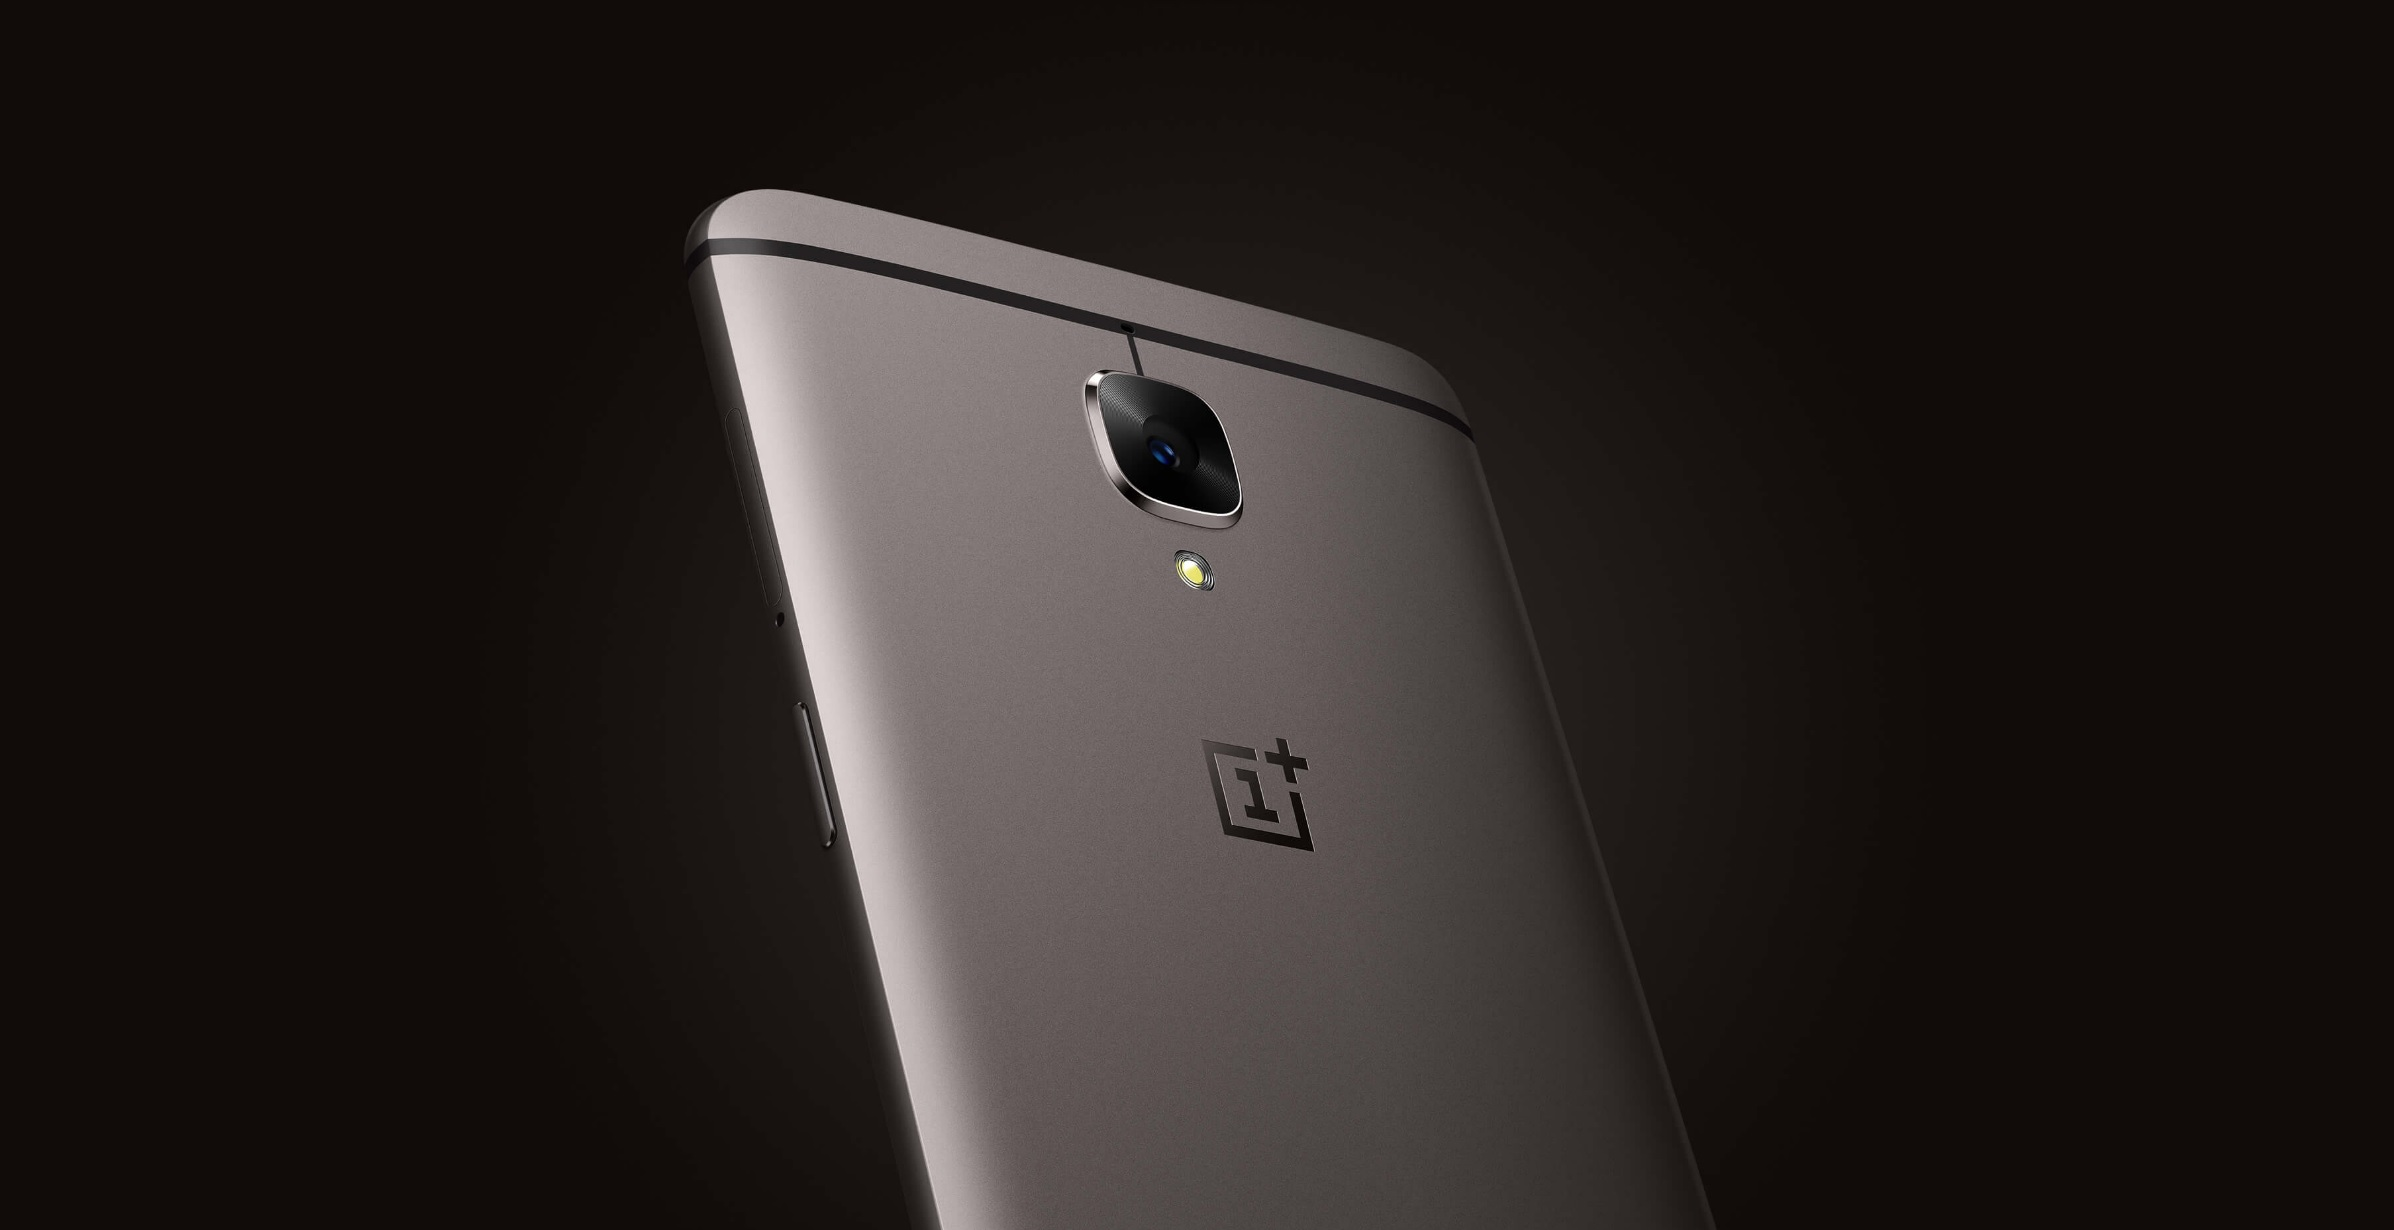 OnePlus One / Two / 3 / 3T / 5 Mega UNBRICK Guide + TWRP